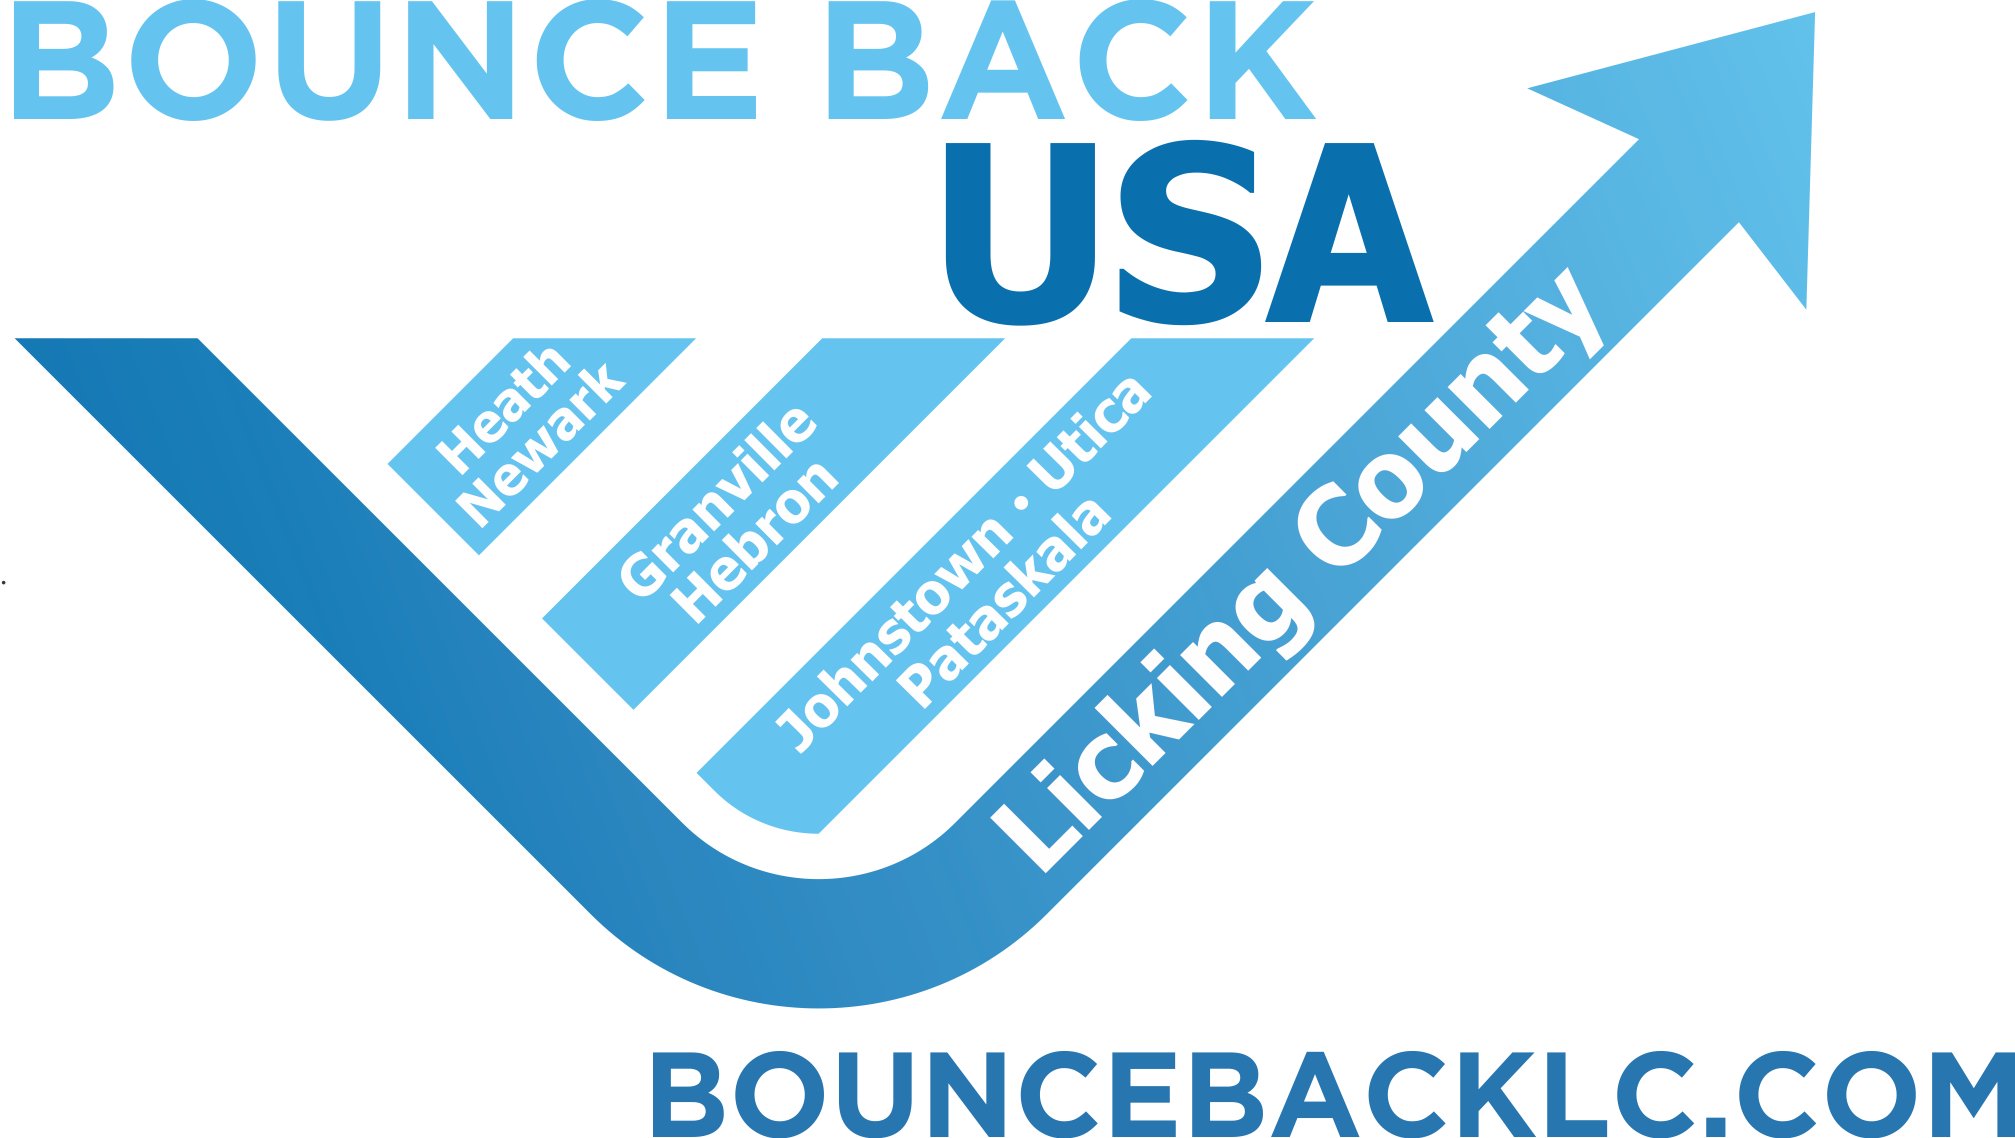 Bounce Back LC Website